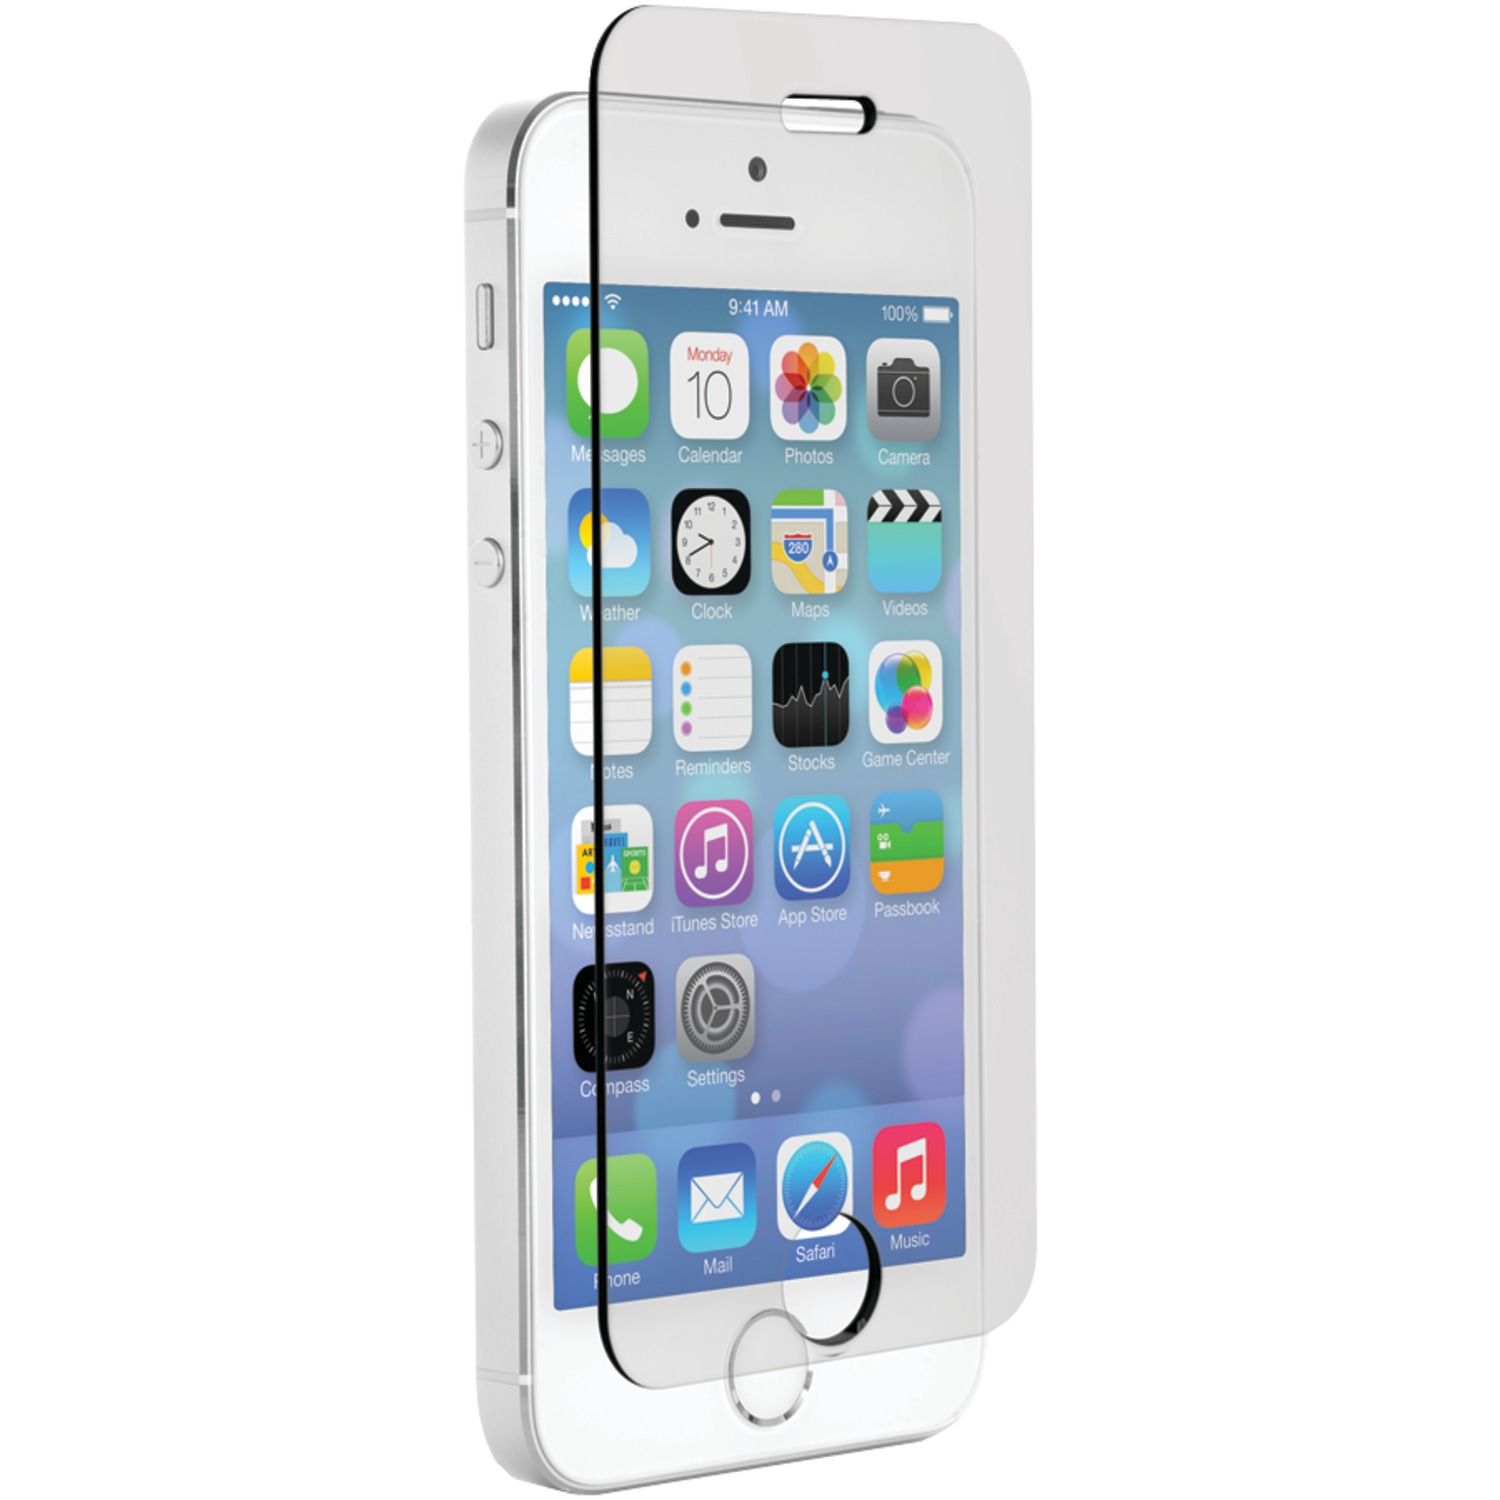 iphone 5s glass screen protector znitro 700358621987 iphone r 5 5s 5c nitro glass screen 17475